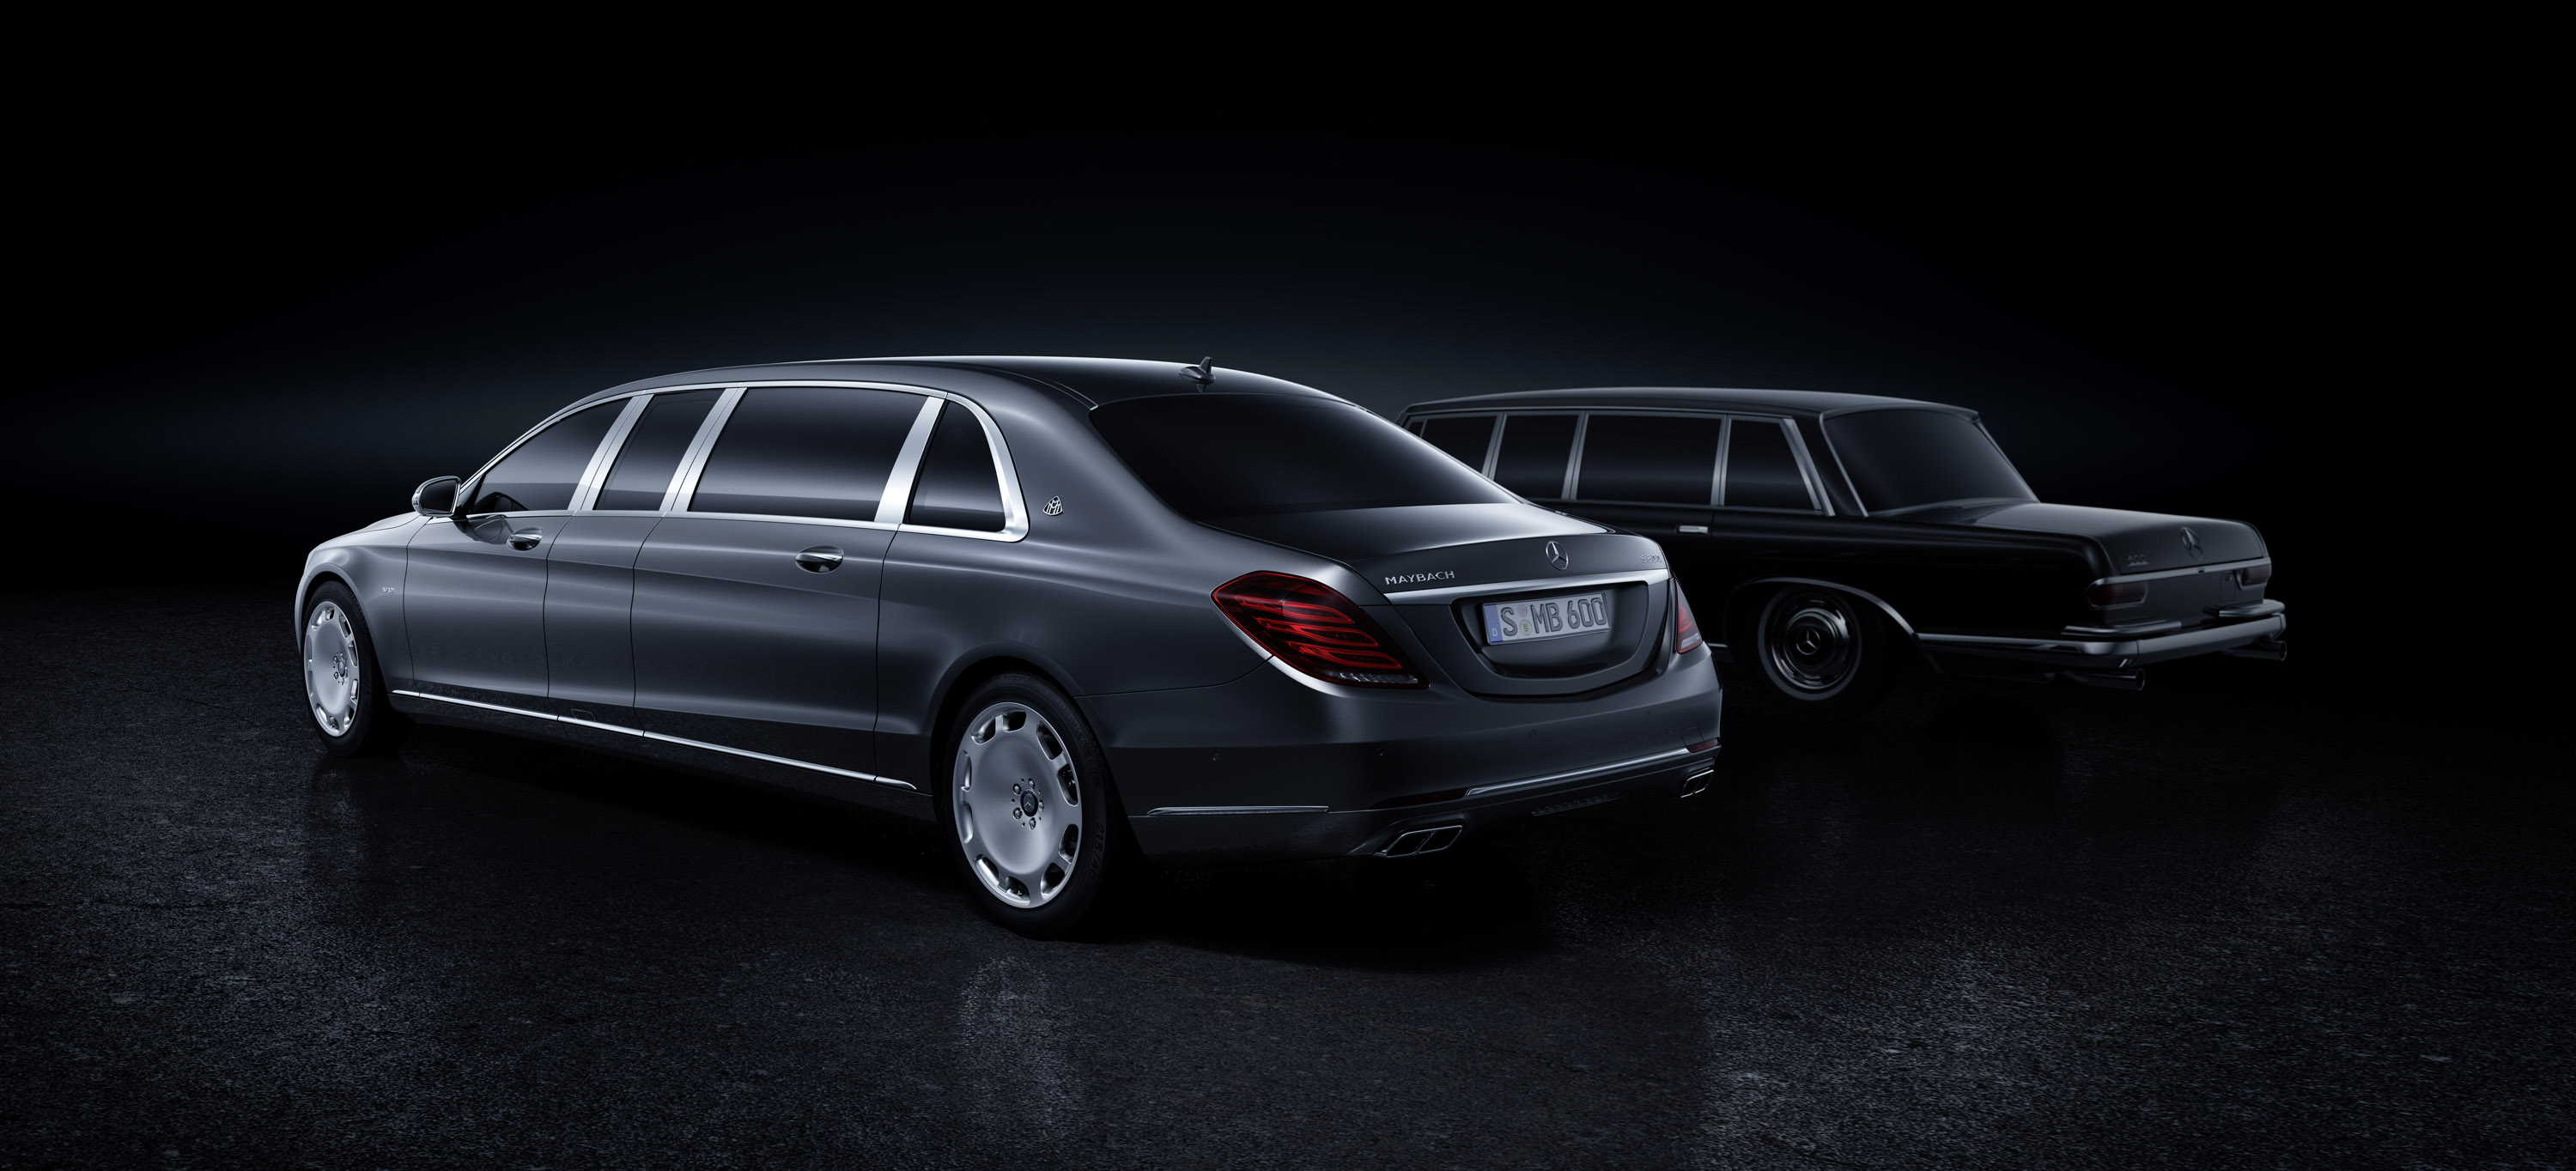 2016 mercedes benz s600 pullman maybach hd pictures for Mercedes benz pullman